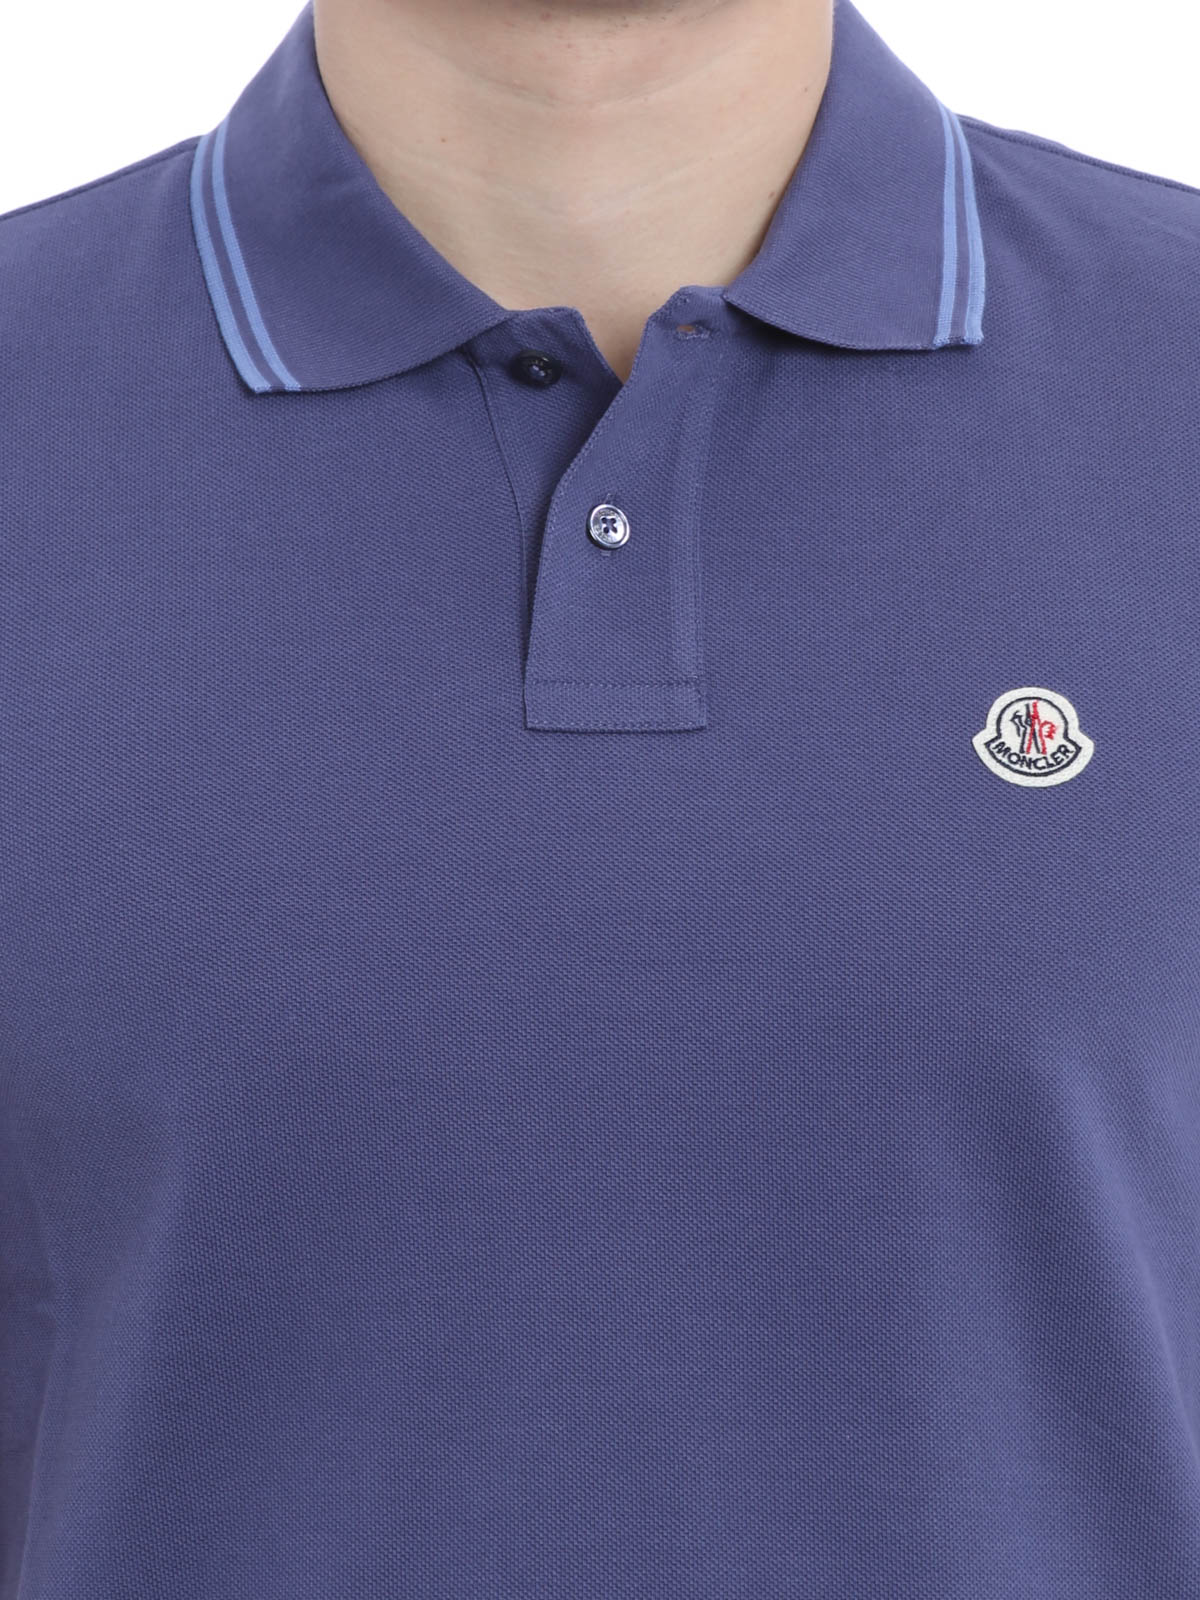 Contrasting Trim Polo Shirt By Moncler Polo Shirts Ikrix